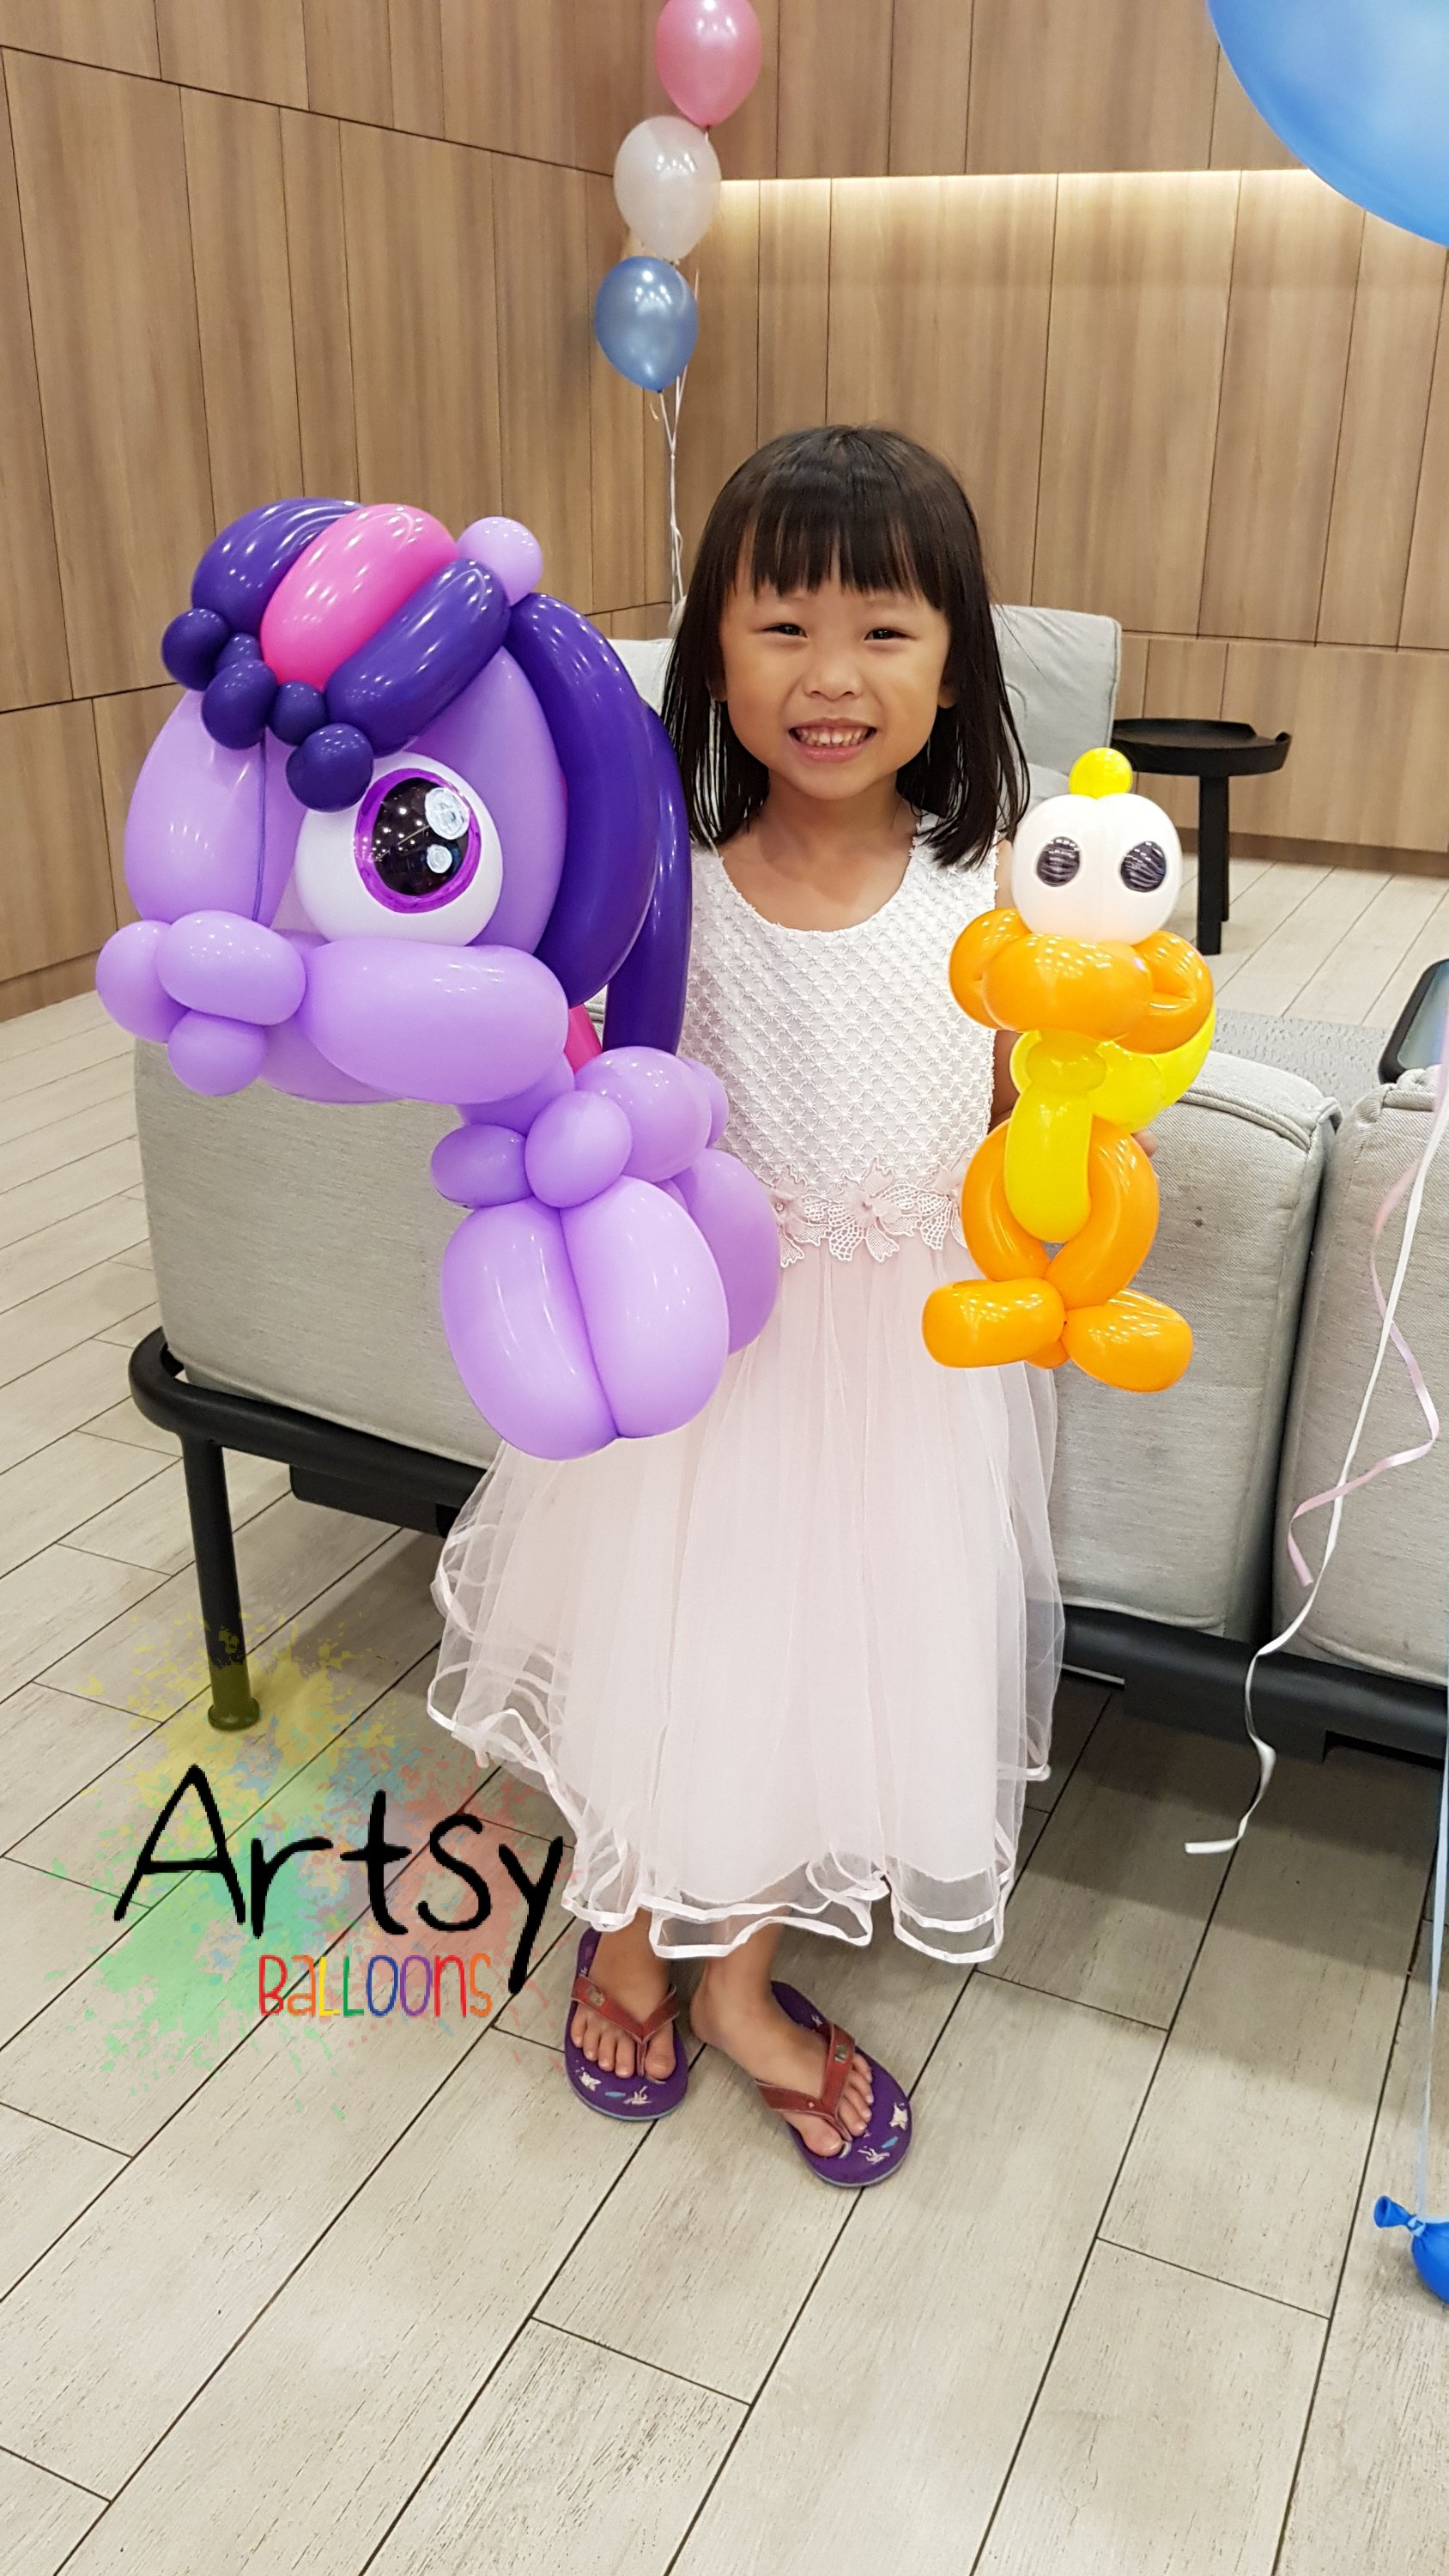 , Cartoon Twisting, Singapore Balloon Decoration Services - Balloon Workshop and Balloon Sculpting